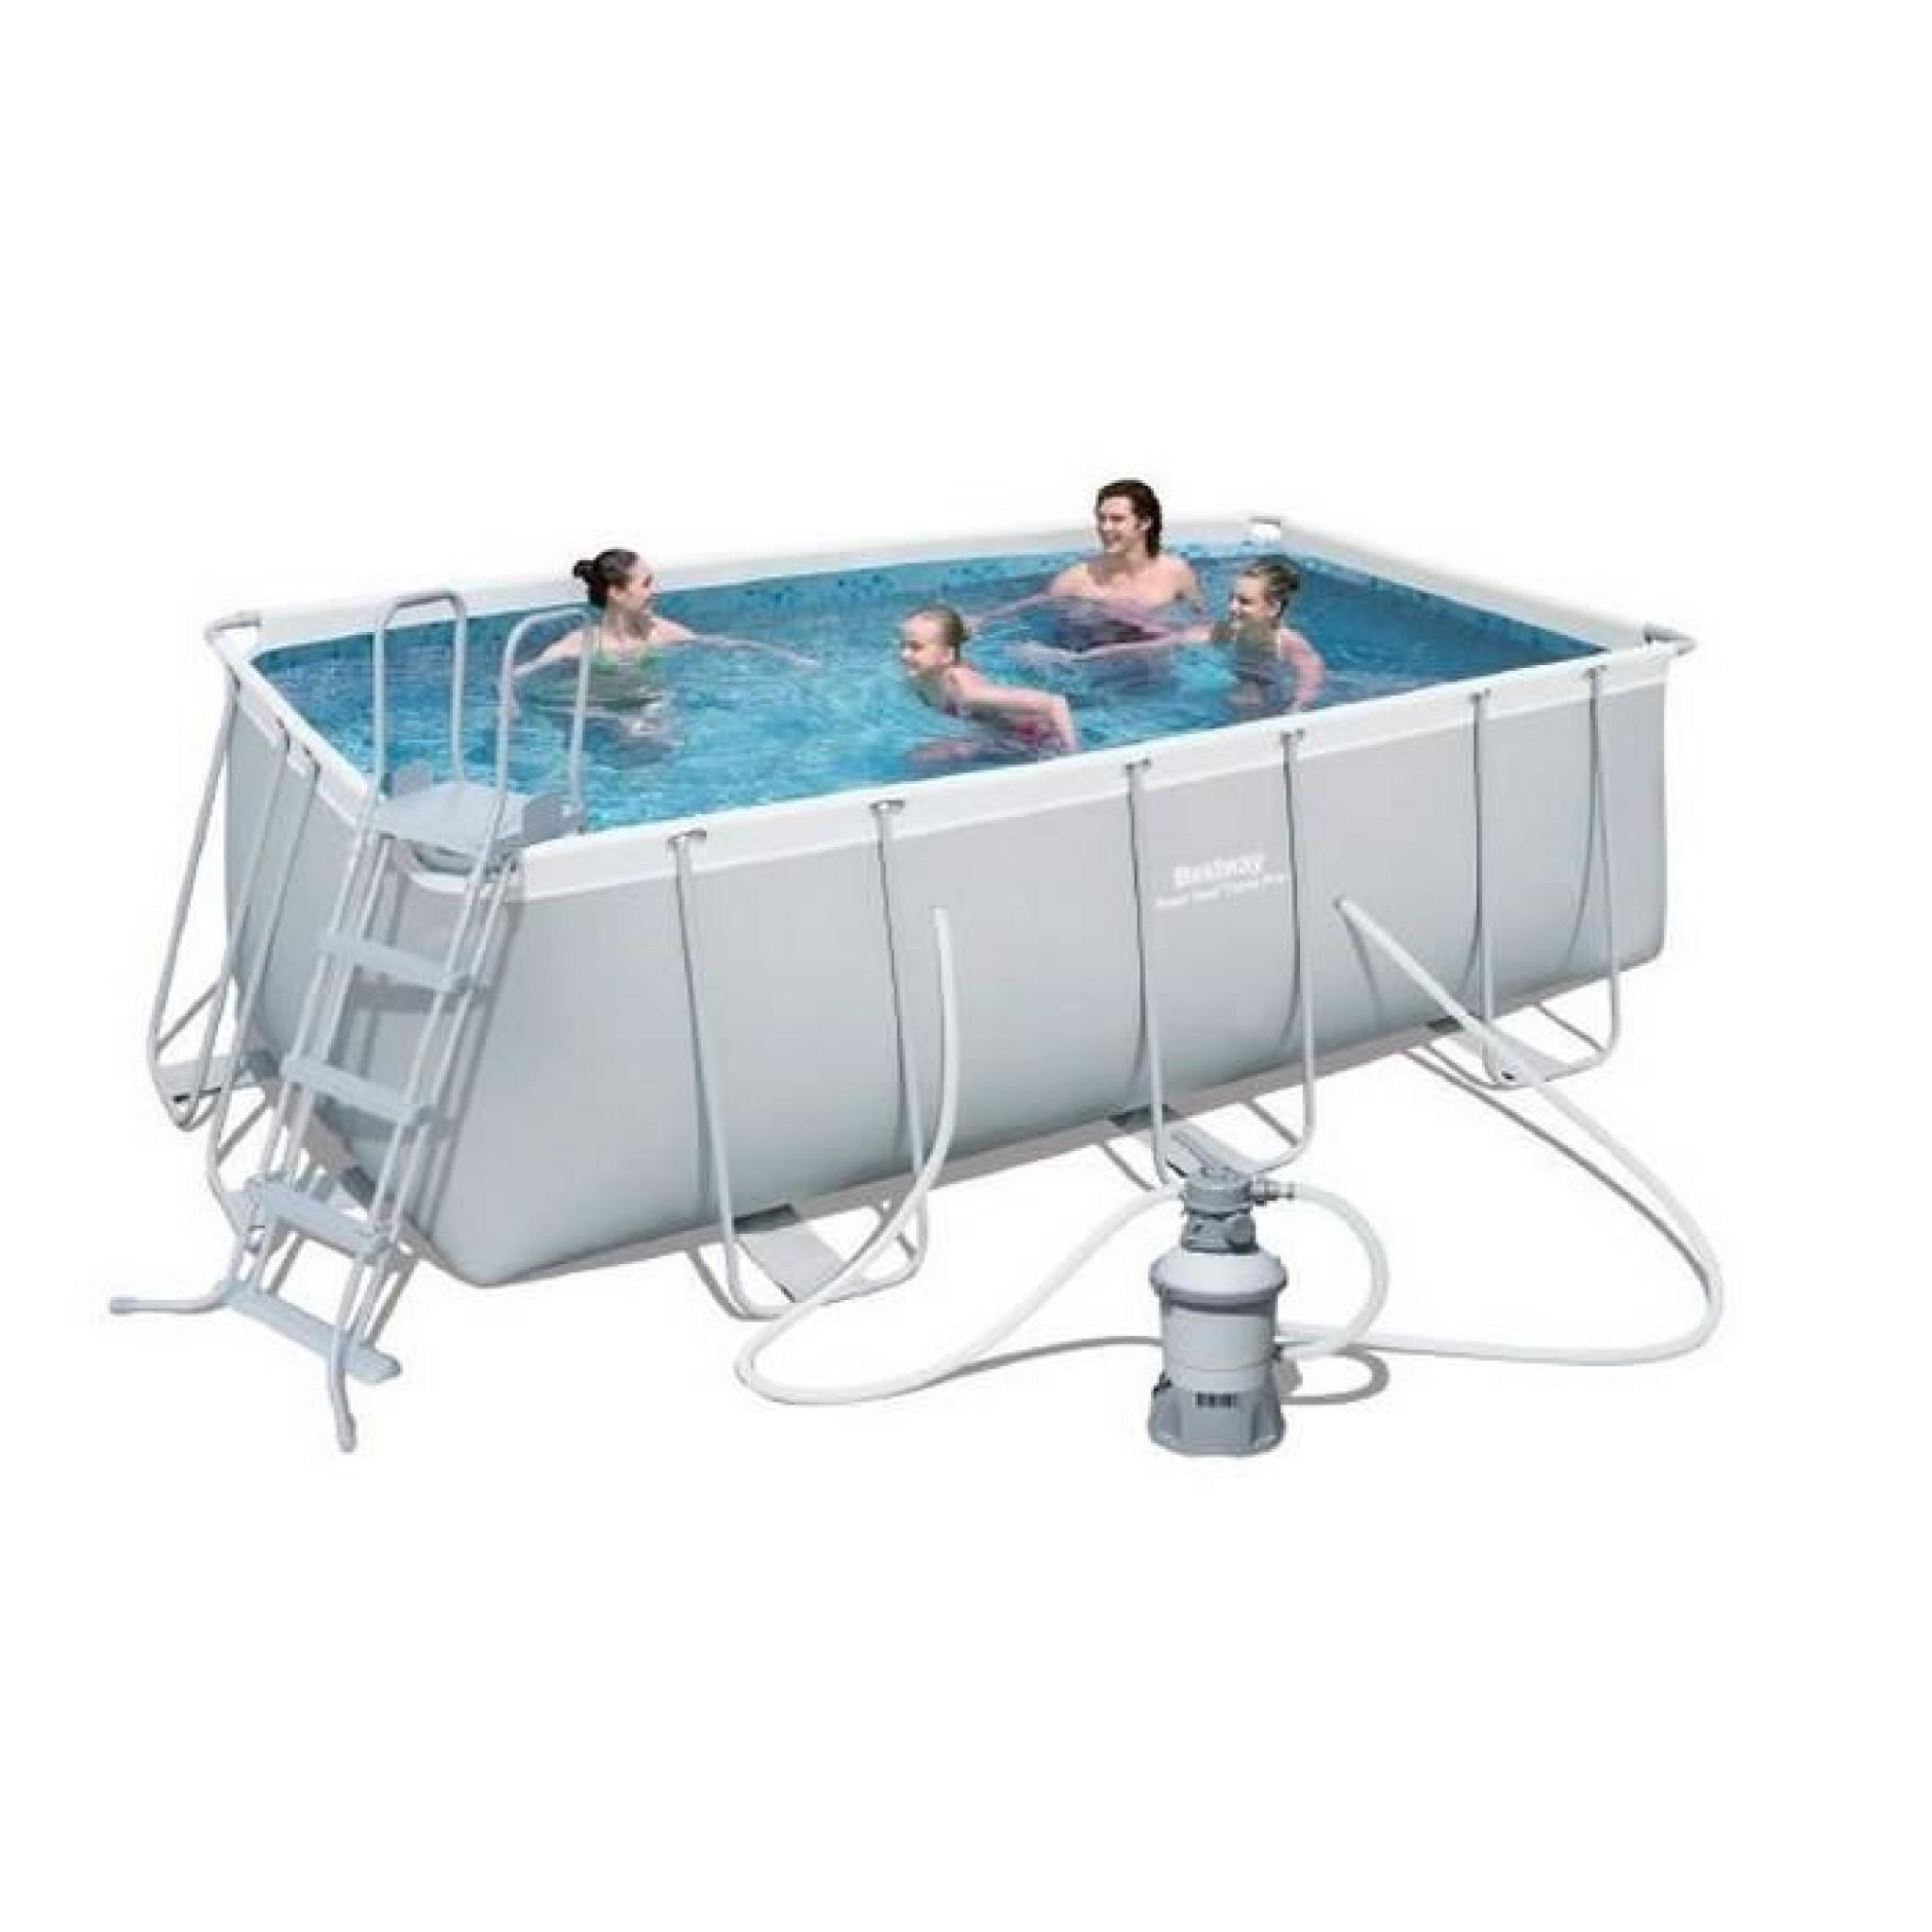 Bestway piscine tubulaire rectangulaire for Piscine tubulaire rectangulaire pas cher